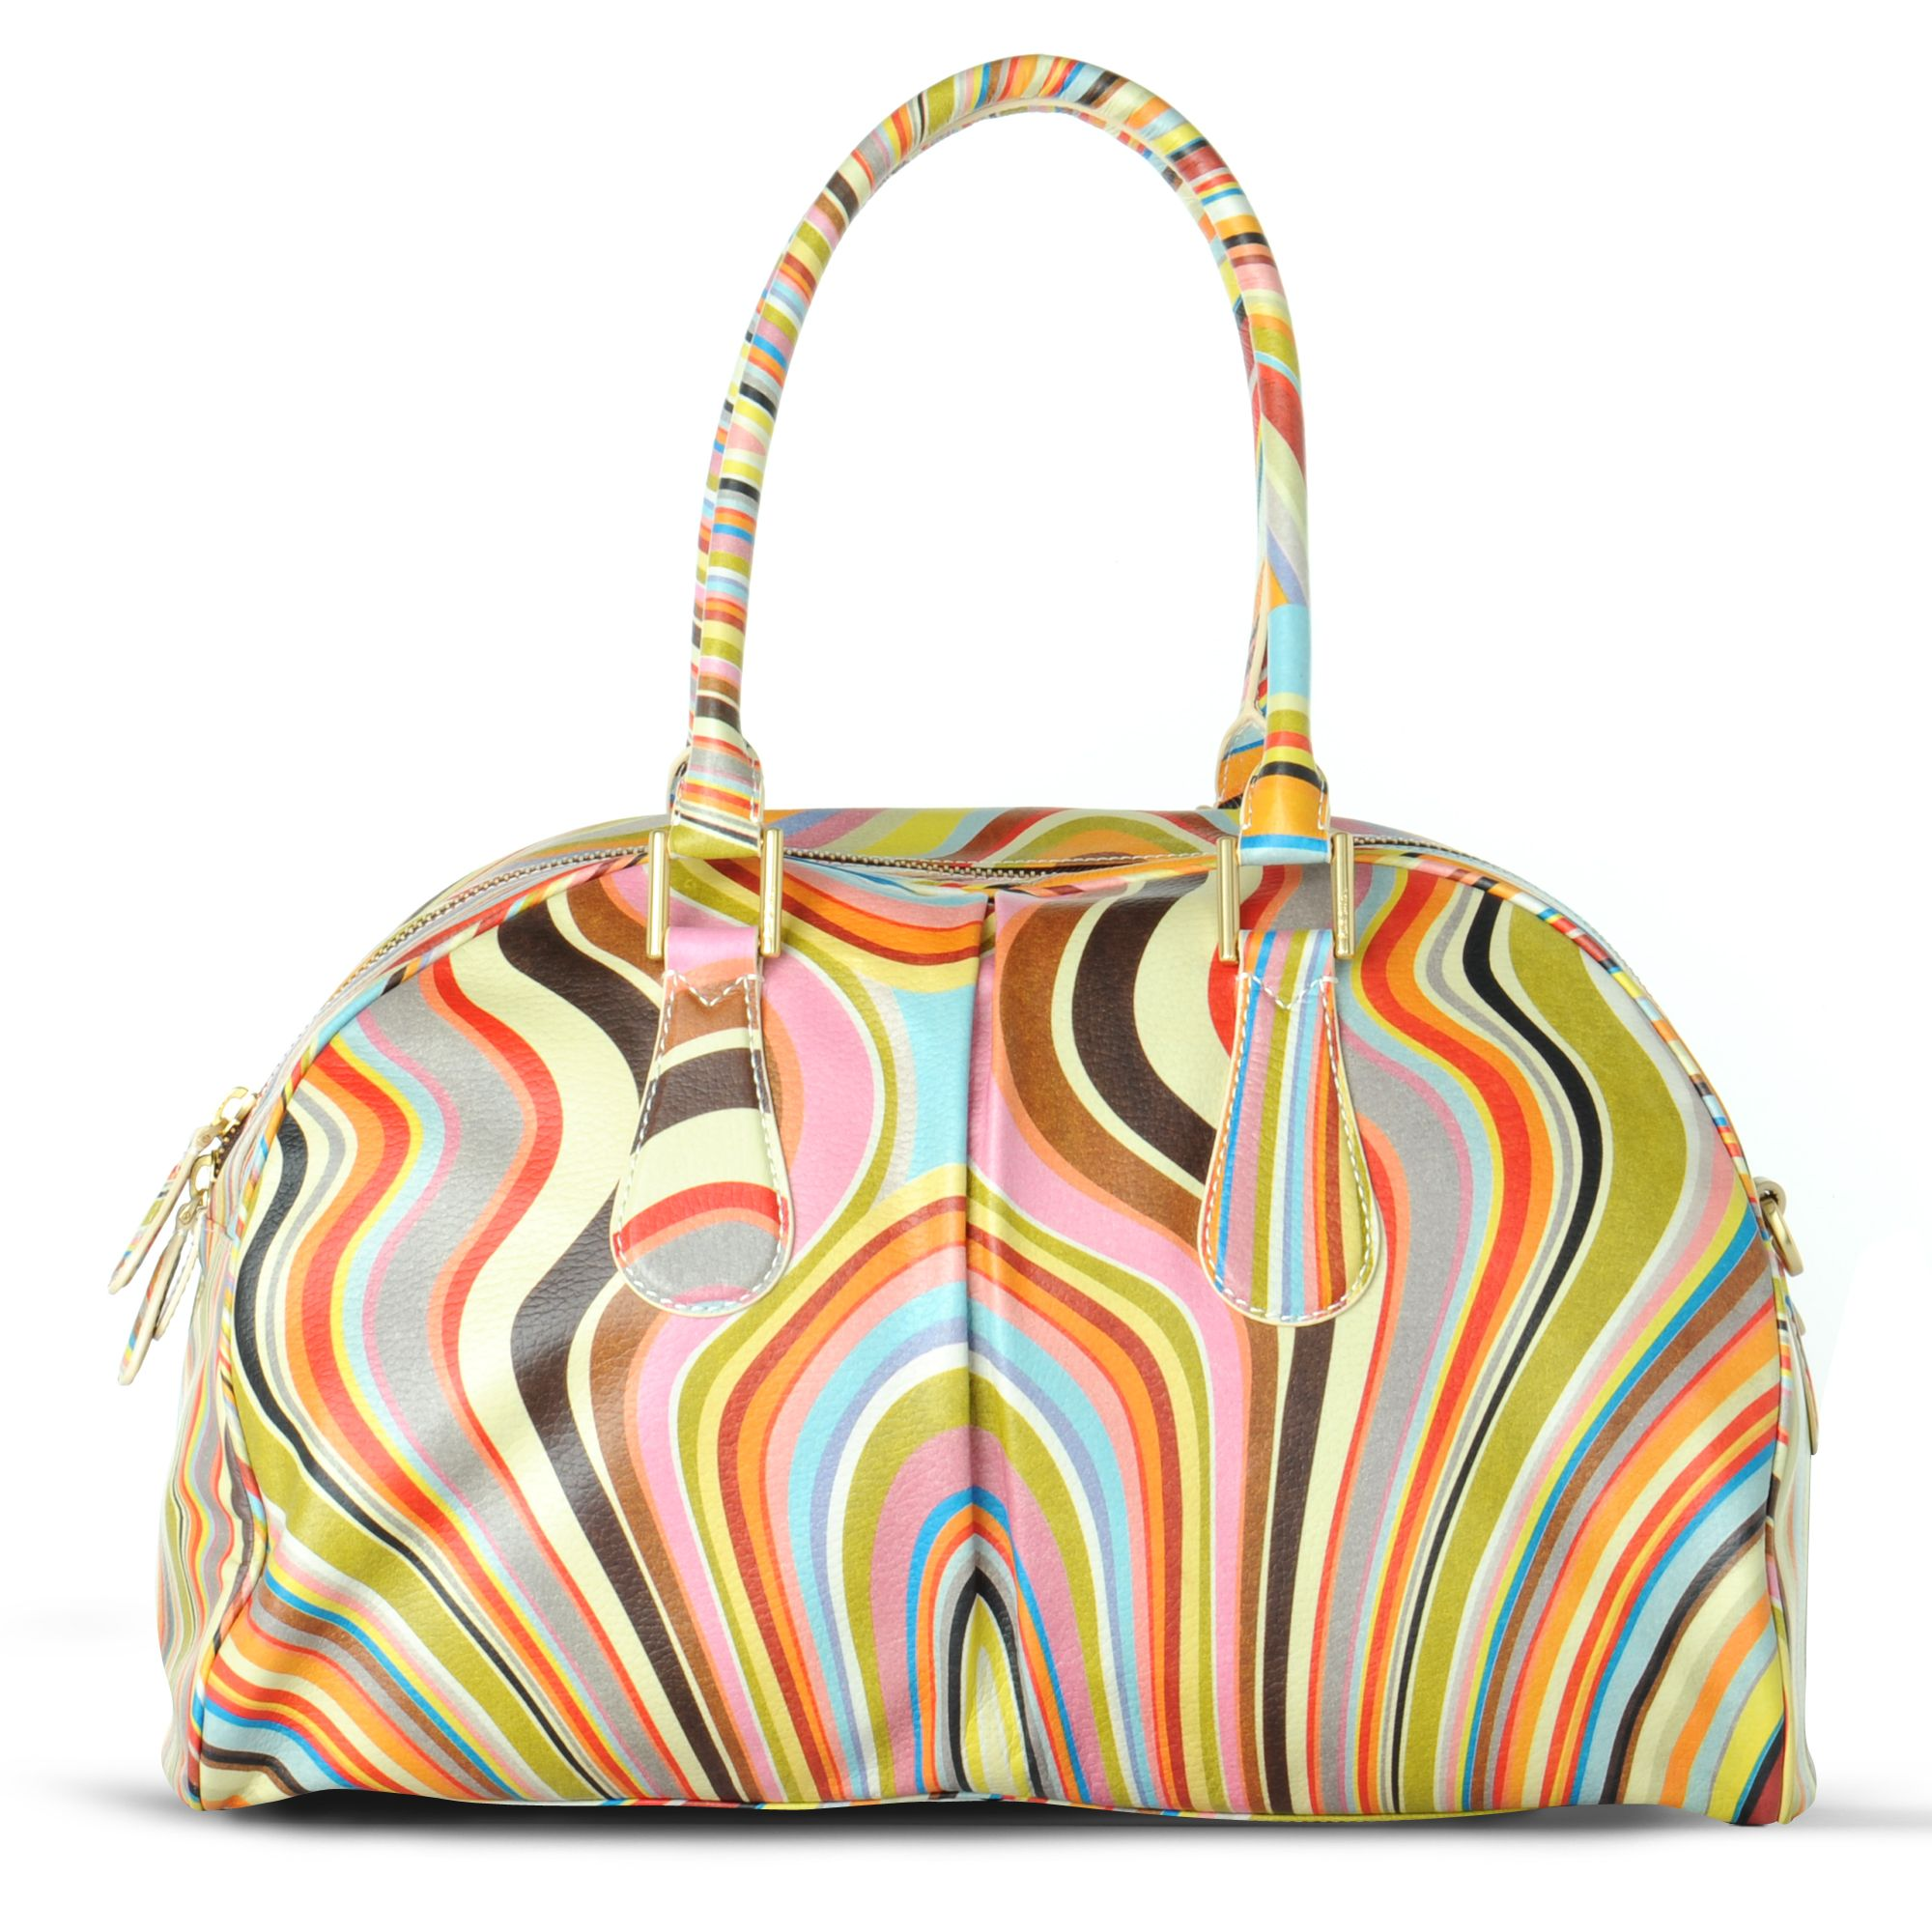 Multi Color Leather Purse Best Image Ccdbb